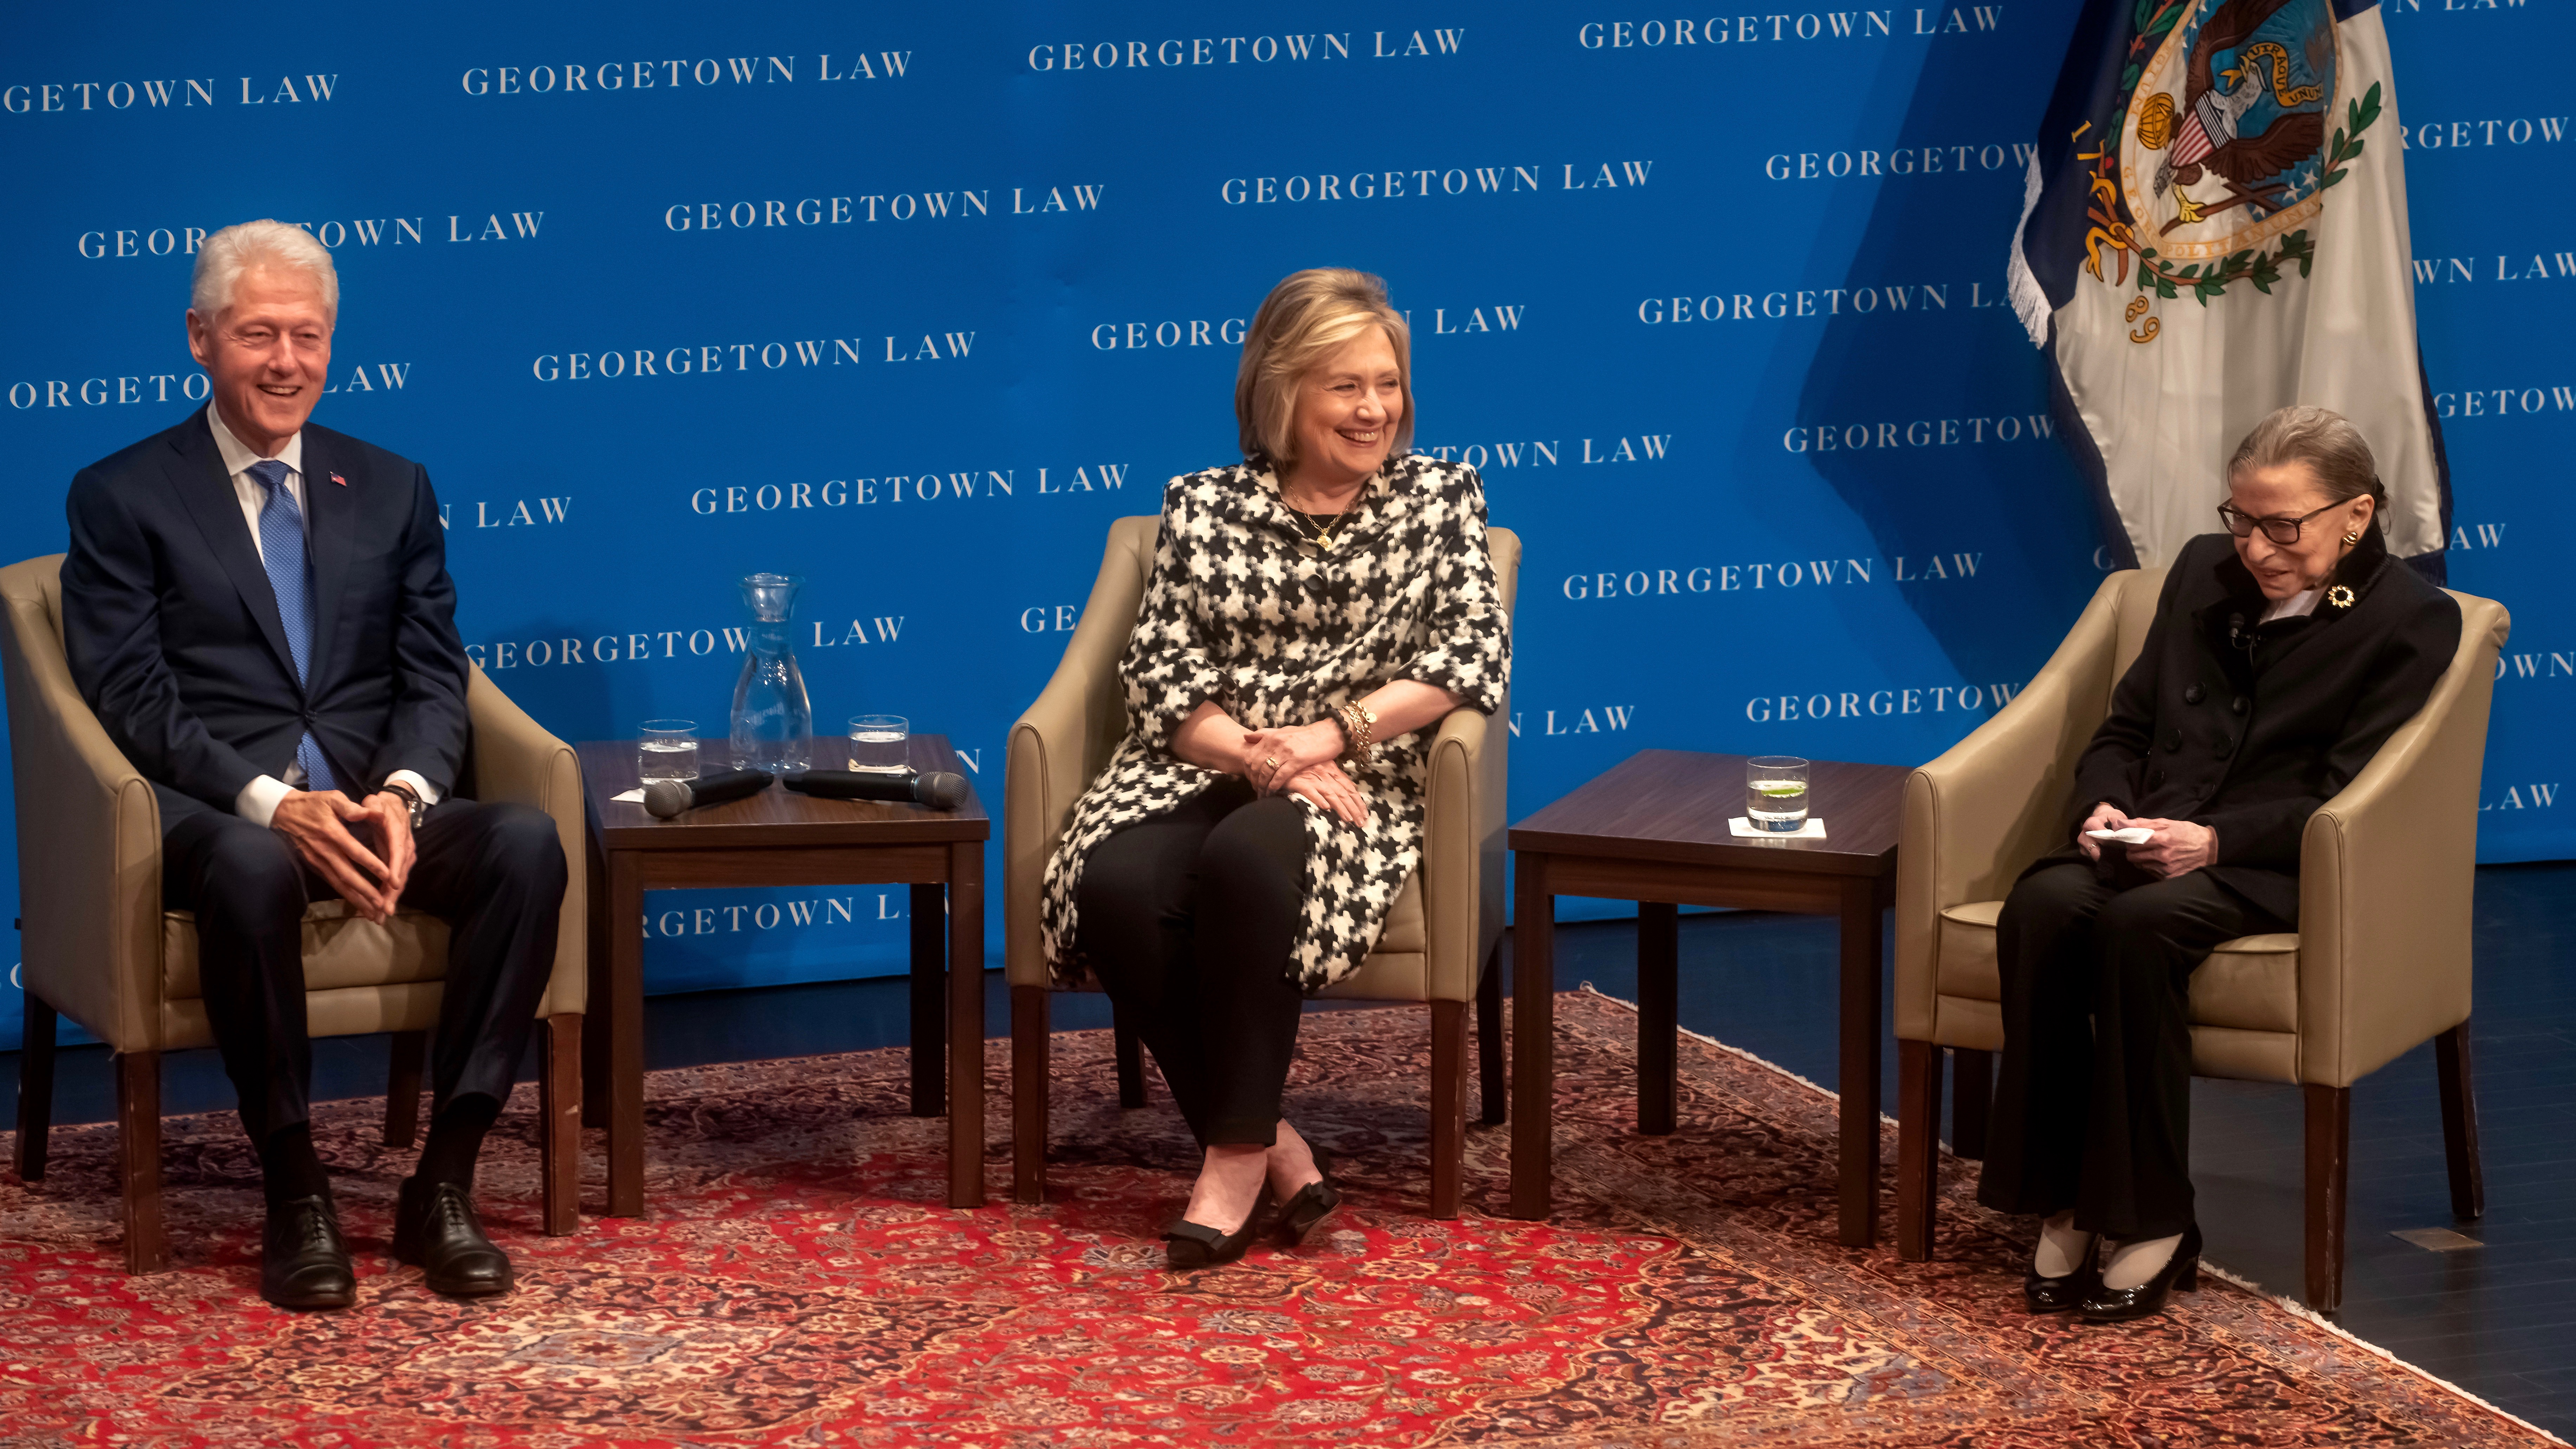 Bill and Hillary Clinton with RBG on Oct. 30